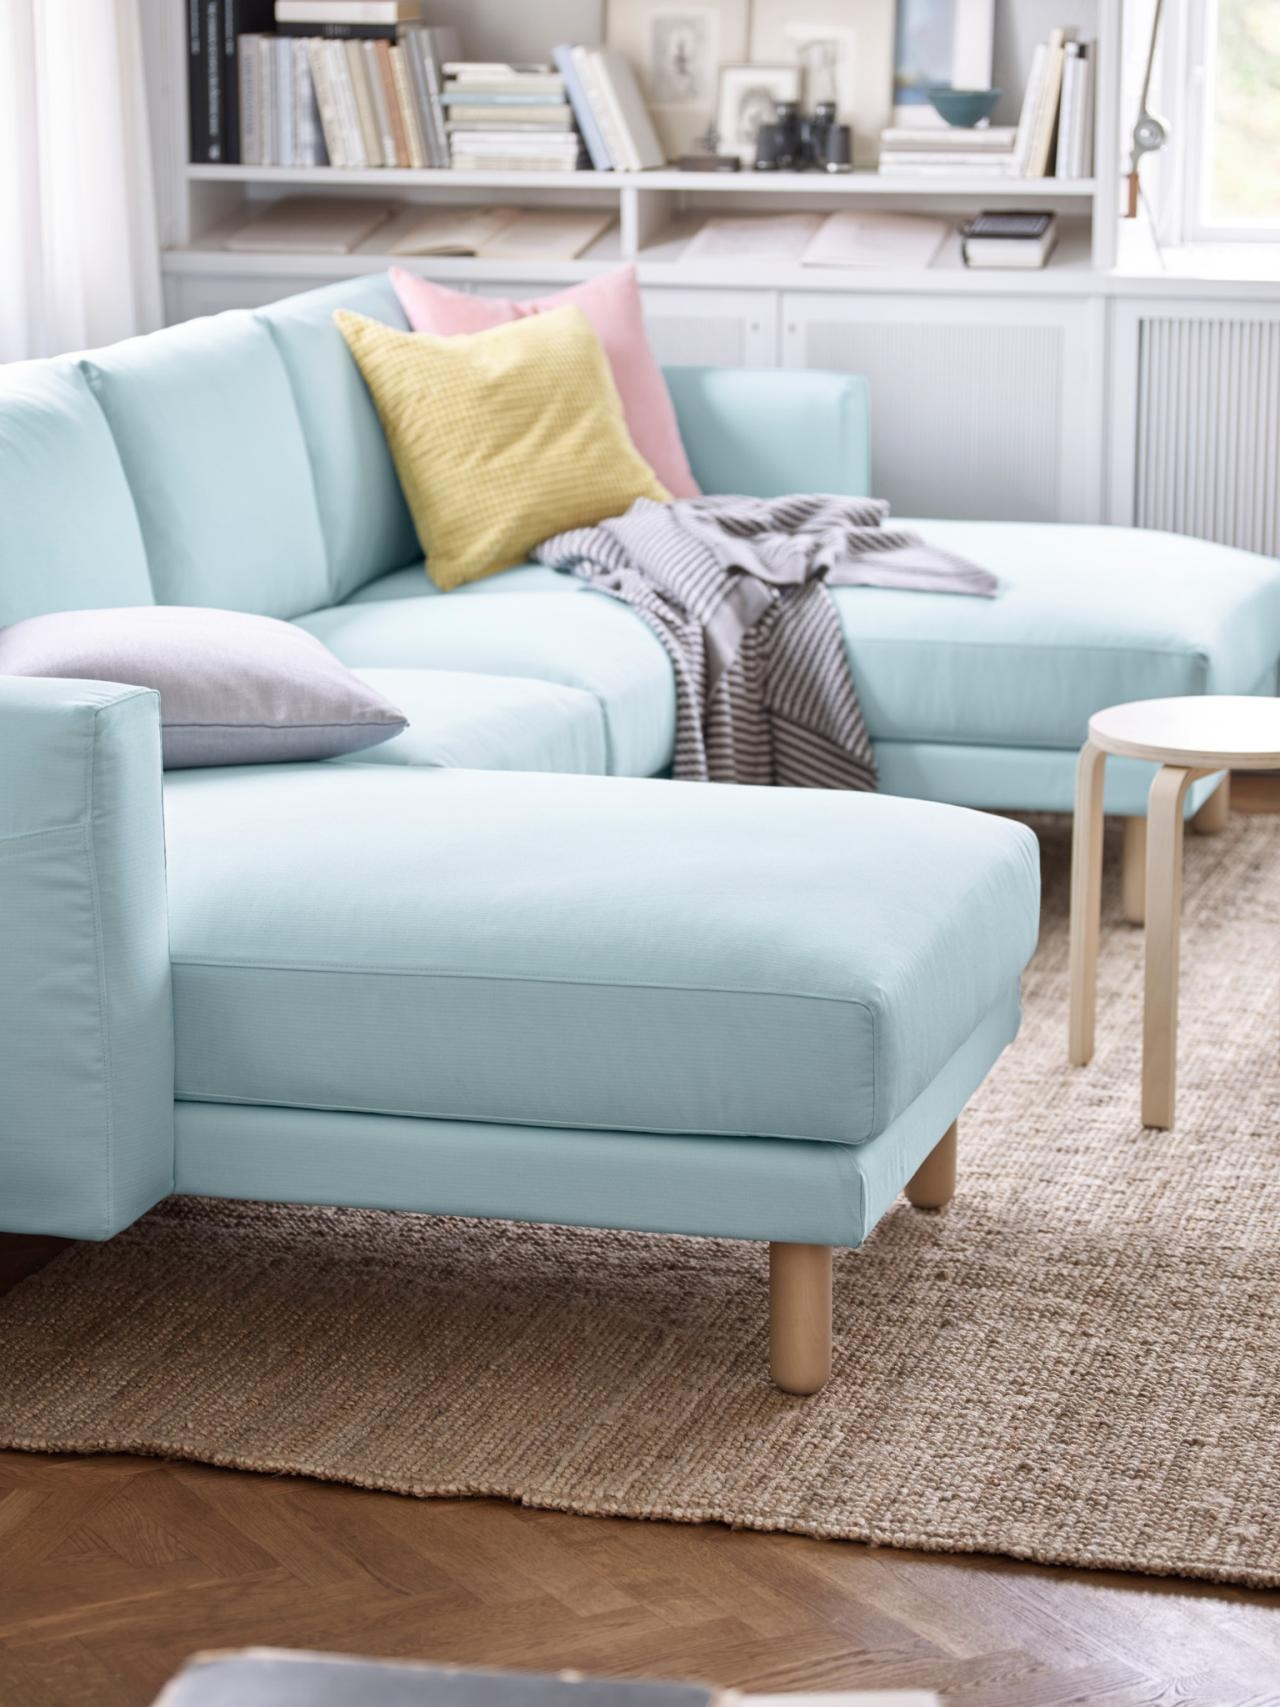 5 Apartment Sized Sofas That Are Lifesavers Hgtvs Decorating Intended For Apartment Size Sofas And Sectionals (#2 of 12)